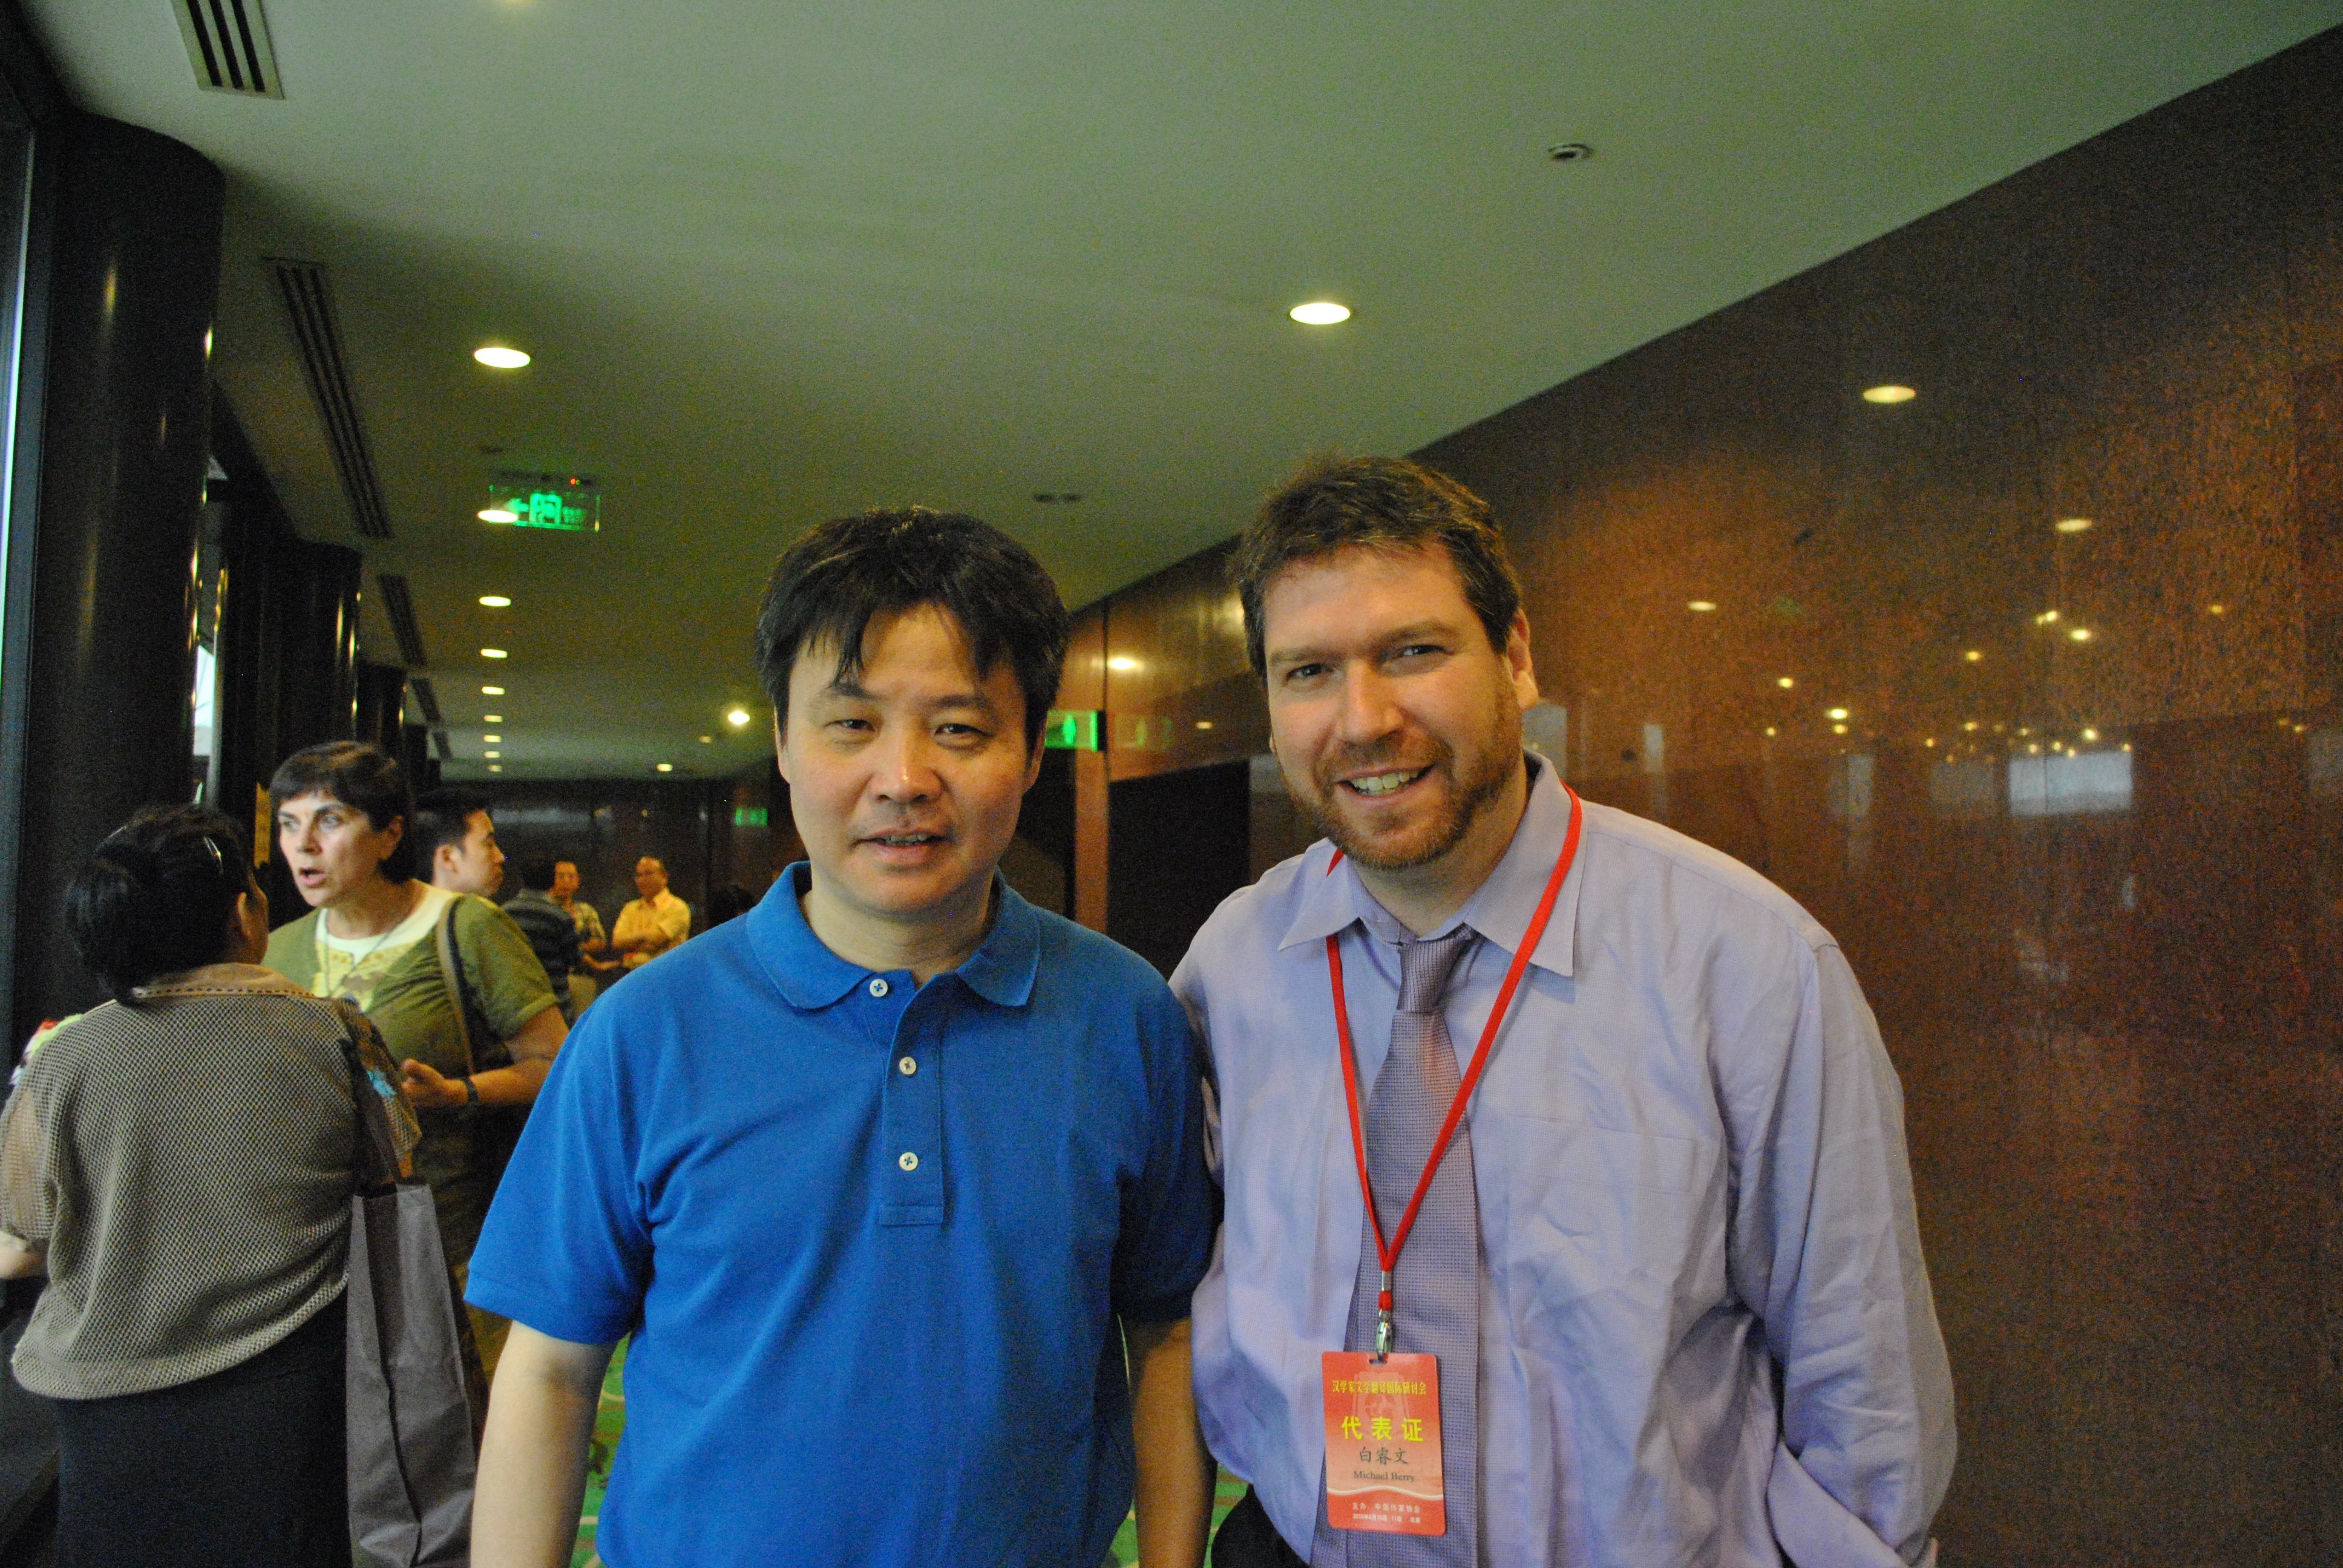 Caption: Yu Hua and Michael Berry Beijing August 2010  , Credit: courtesy of Michael Berry